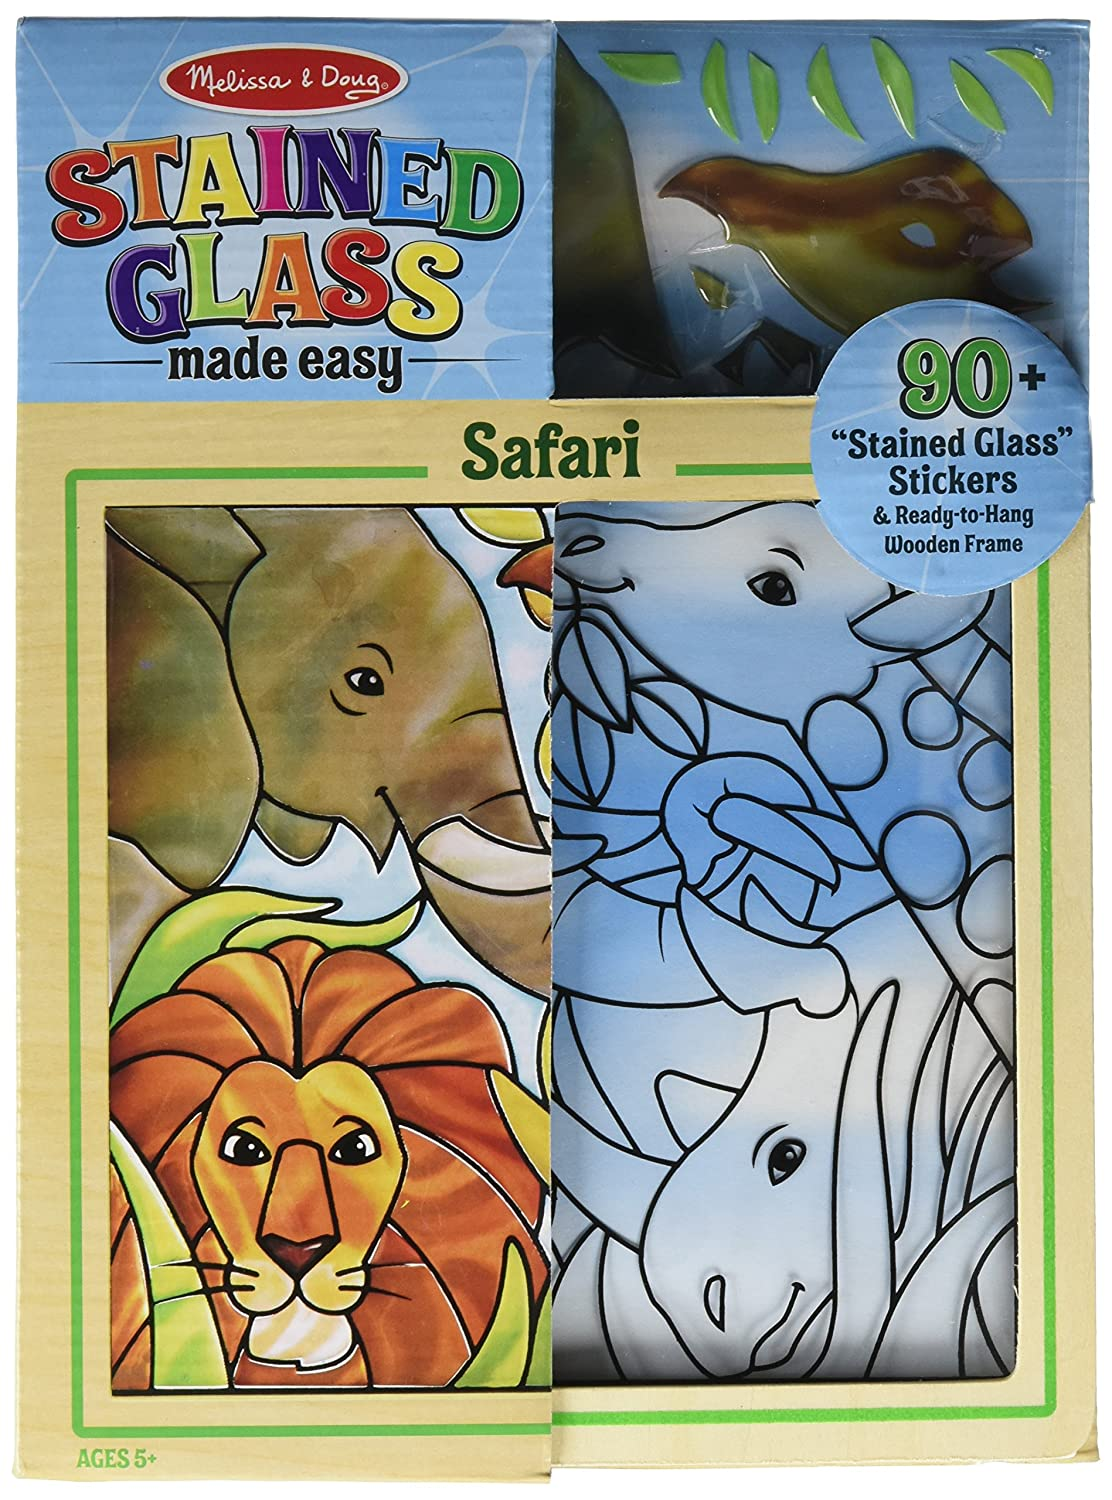 Melissa Doug Stained Glass Made Easy Activity Kit Safari 90 Stickers Wooden Frame